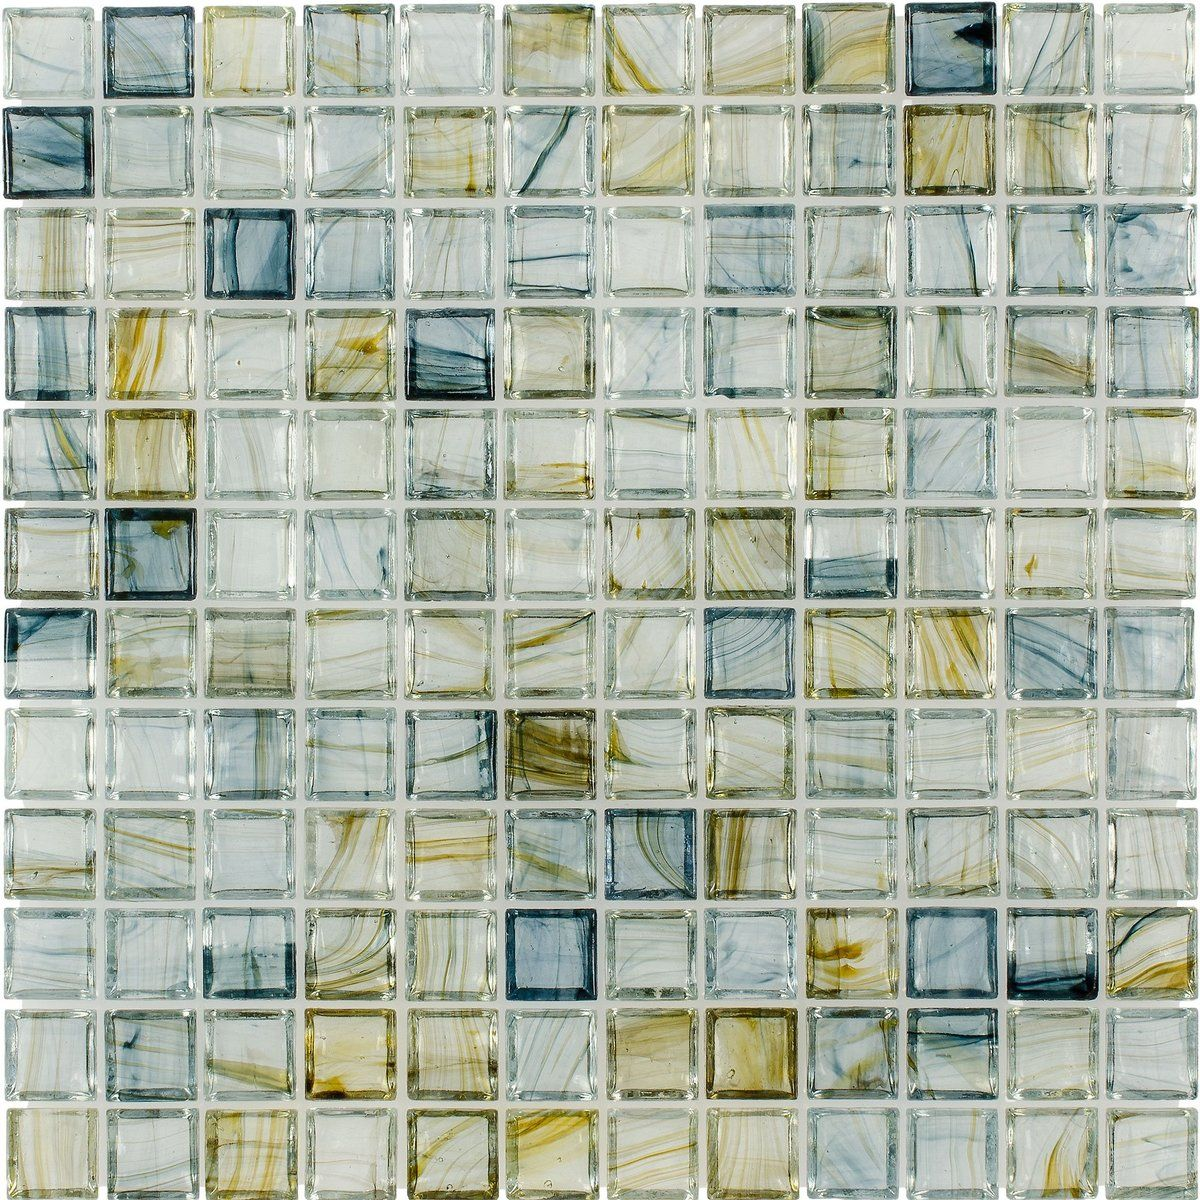 Mto0084 Classic 1x1 Stacked Squares Blue Green Glossy Glass Mosaic Tile Mosaic Glass Mosaic Wall Tiles Glass Mosaic Tiles